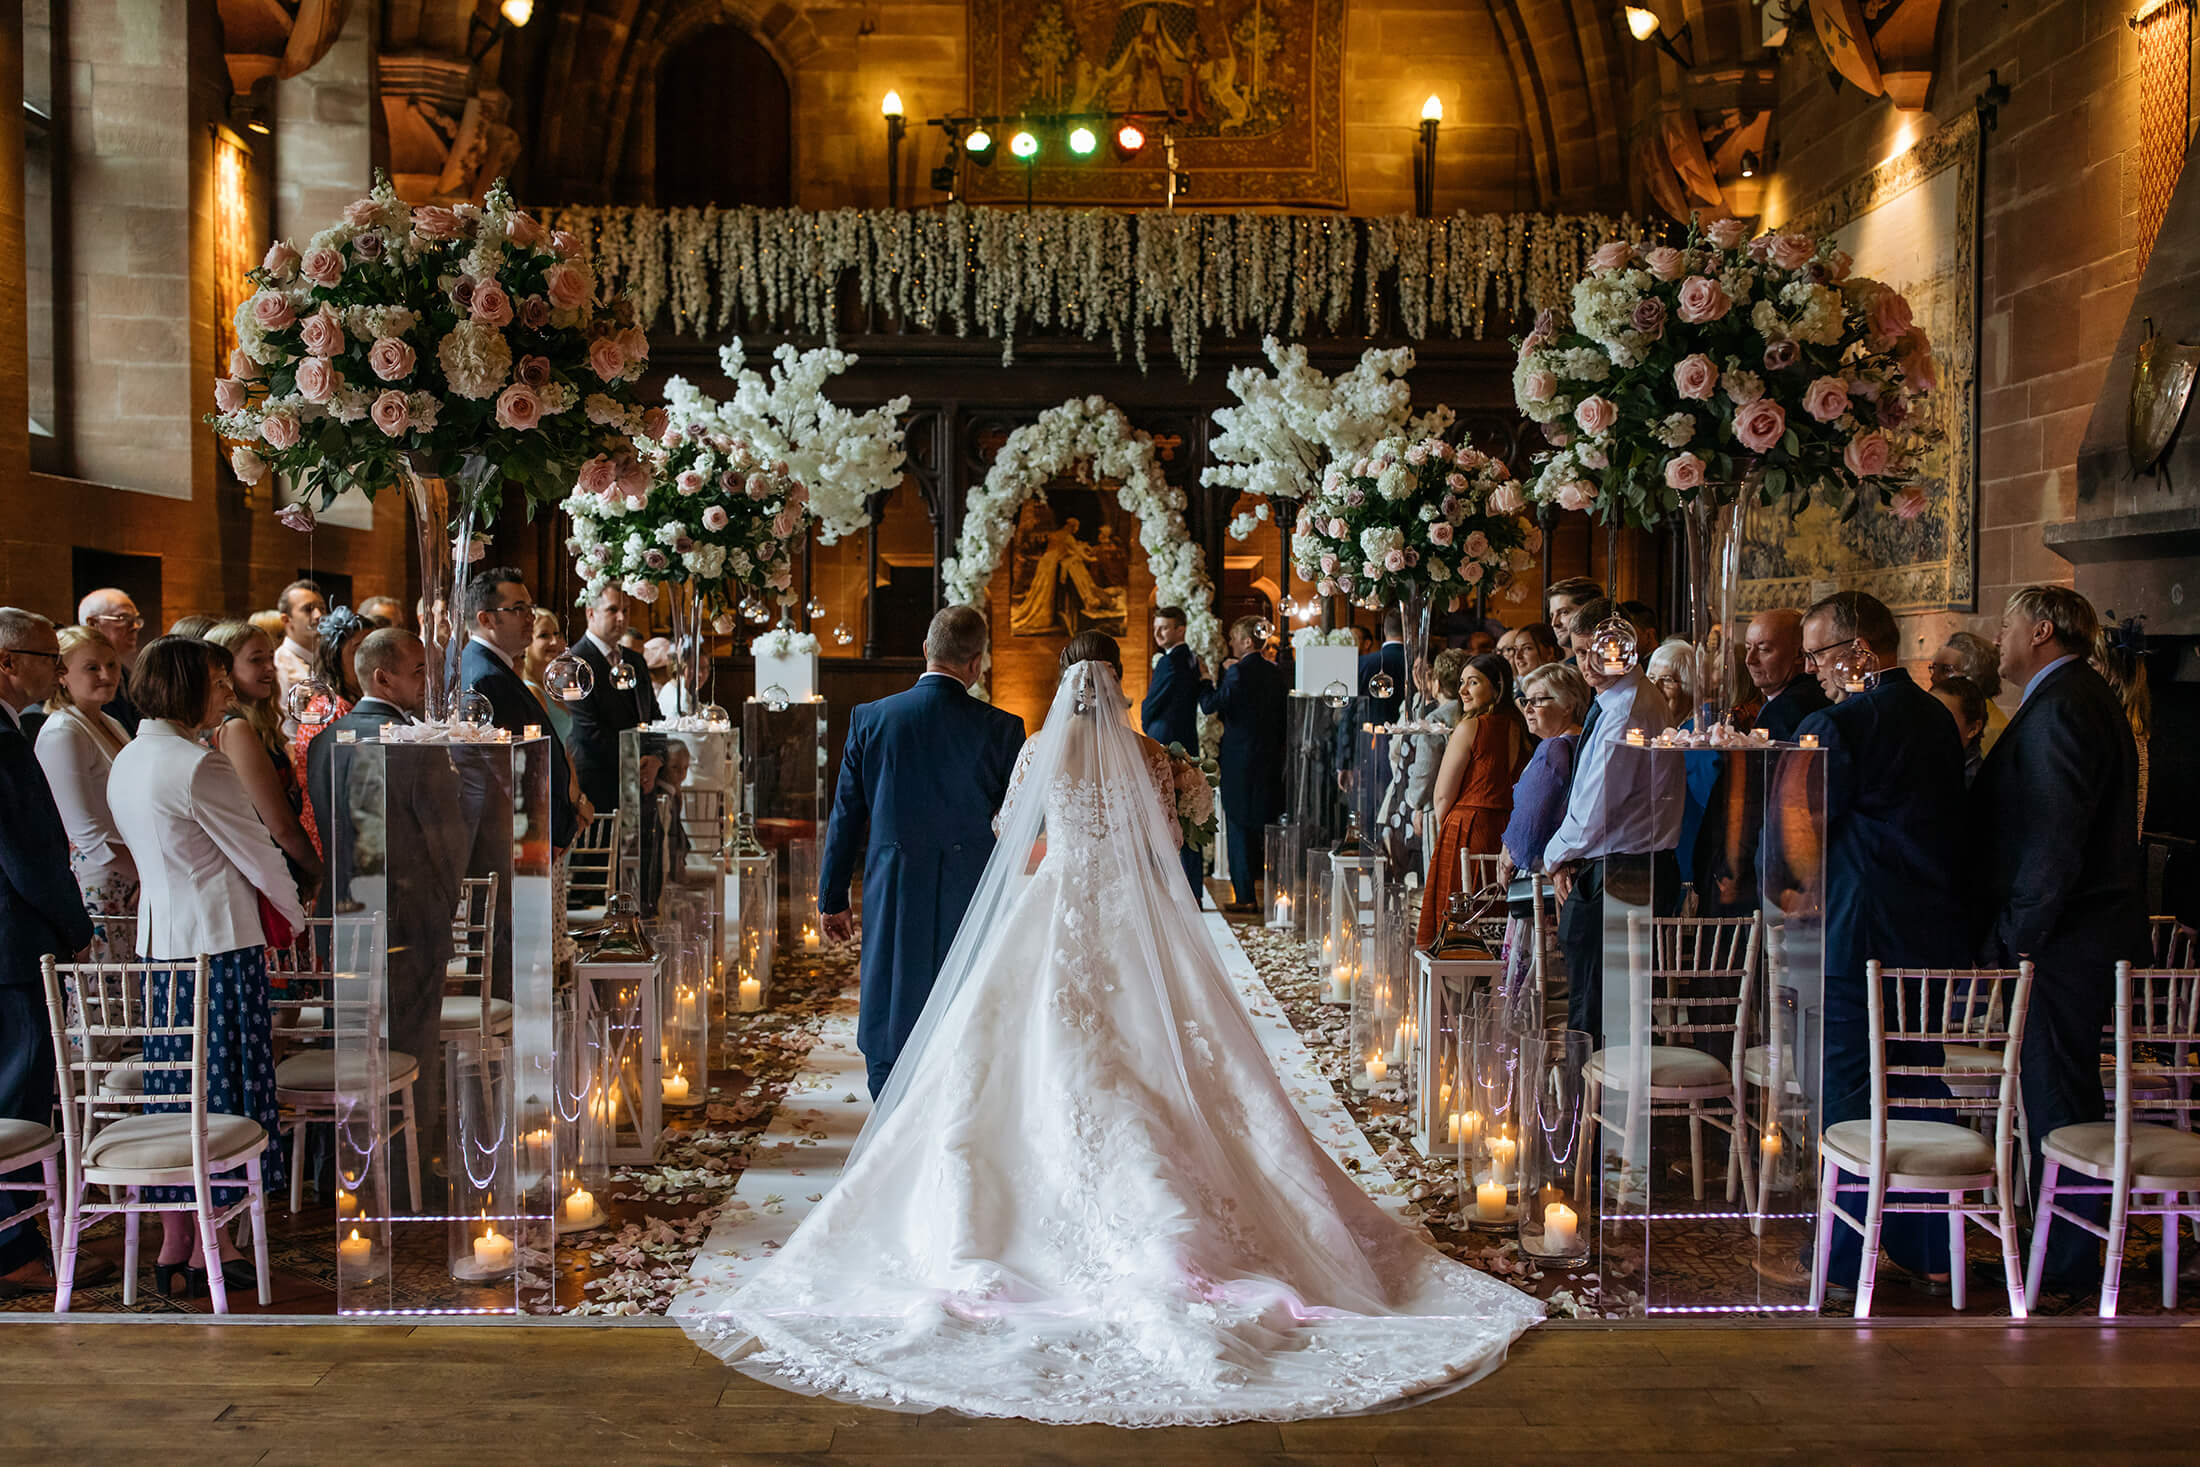 A father walks his daughter down the aisle at Peckforton Castle